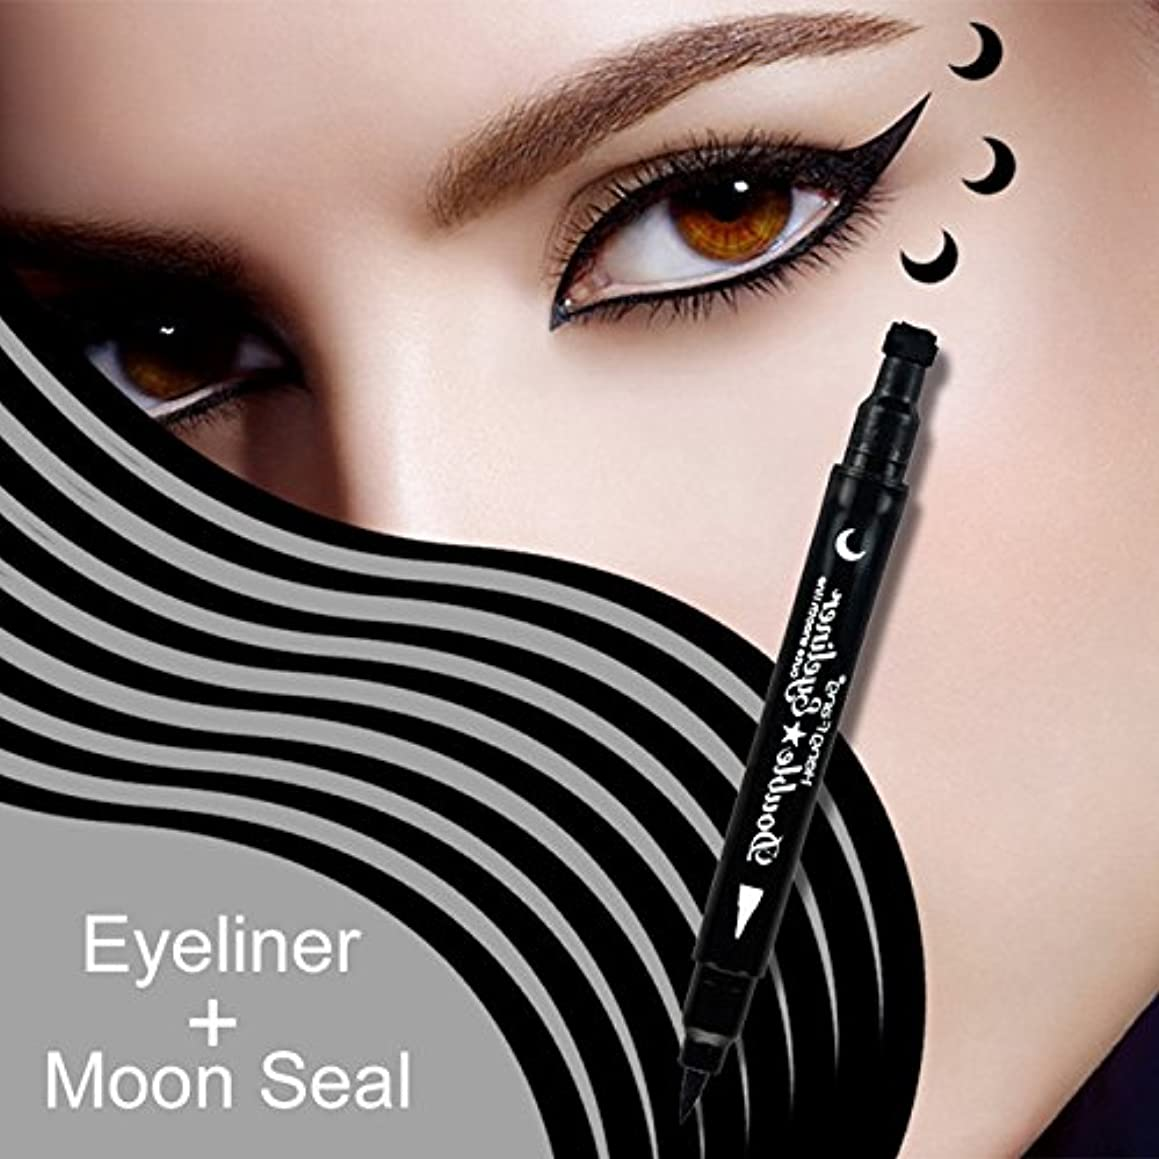 MIOBLET 1PC Super Double-headed Black Liquid Eyeliner Pencil Pen Waterproof Star Heart Moon Flower Shape Seal Stamp Tattoo Eyes Liner Makeup (Moon Seal)